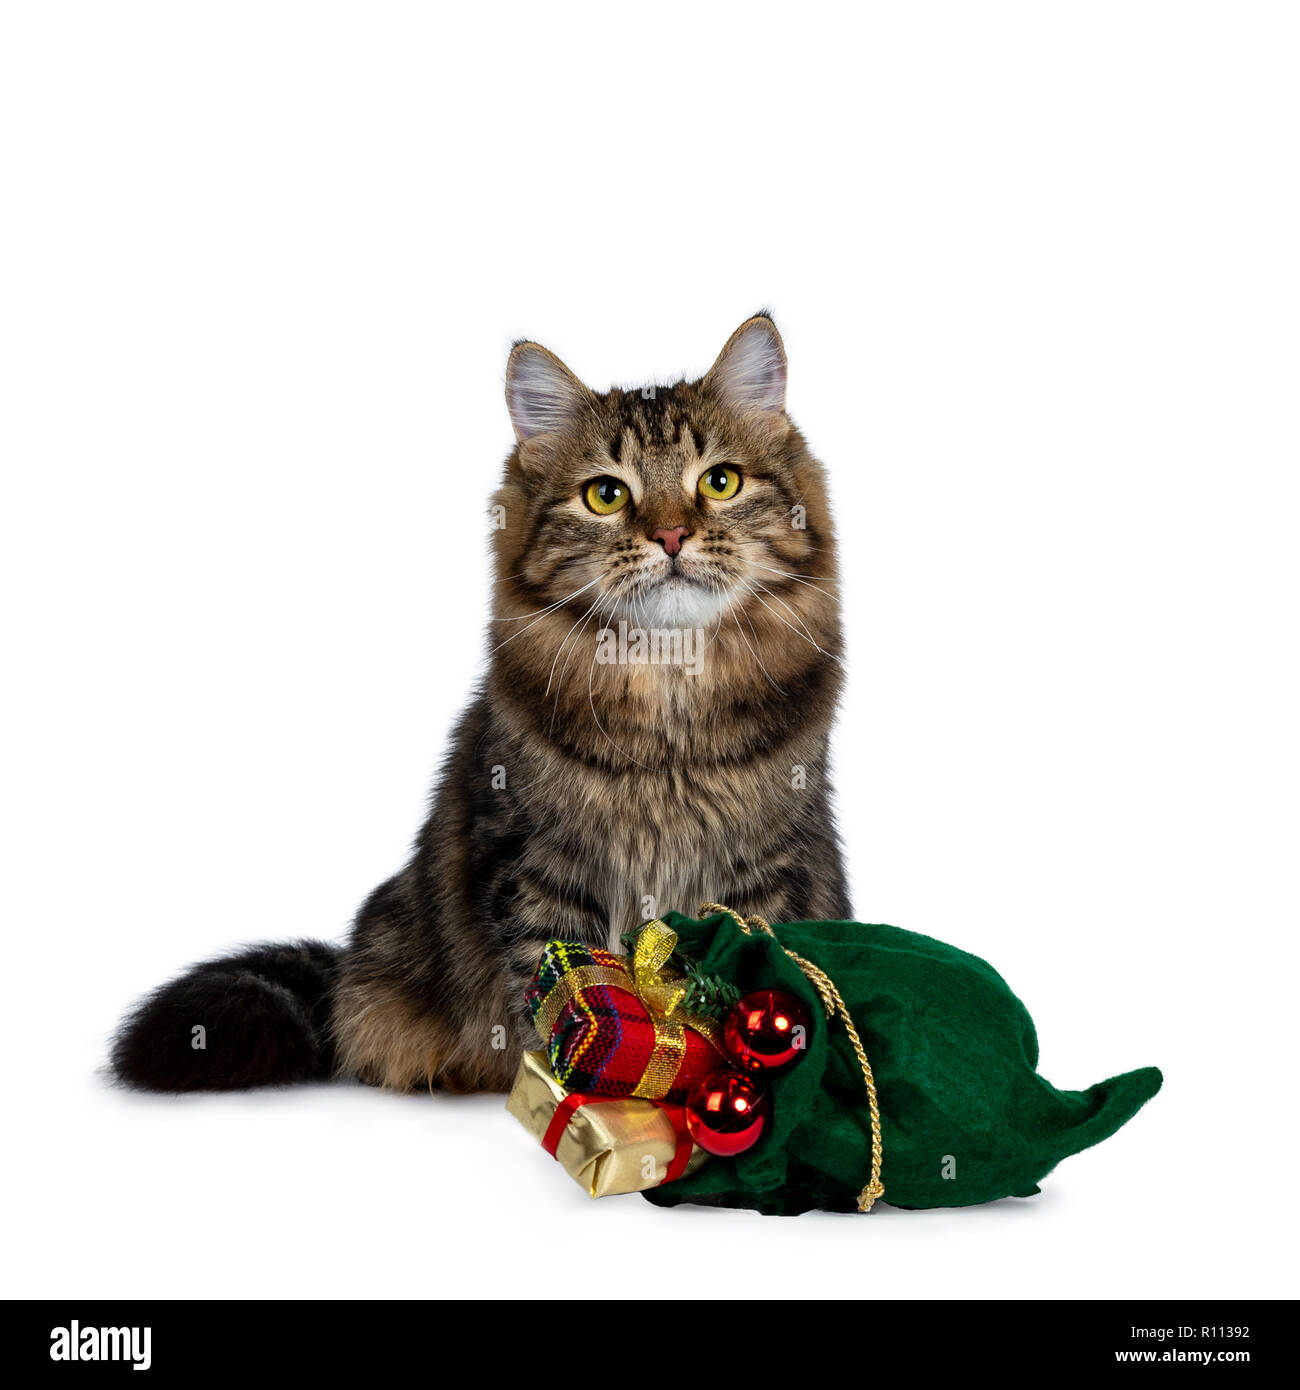 Cute black tabby Siberian cat kitten sitting upbehind a green christmas bag filled with presents and red balls, looking up with bright yellow eyes. Is Stock Photo